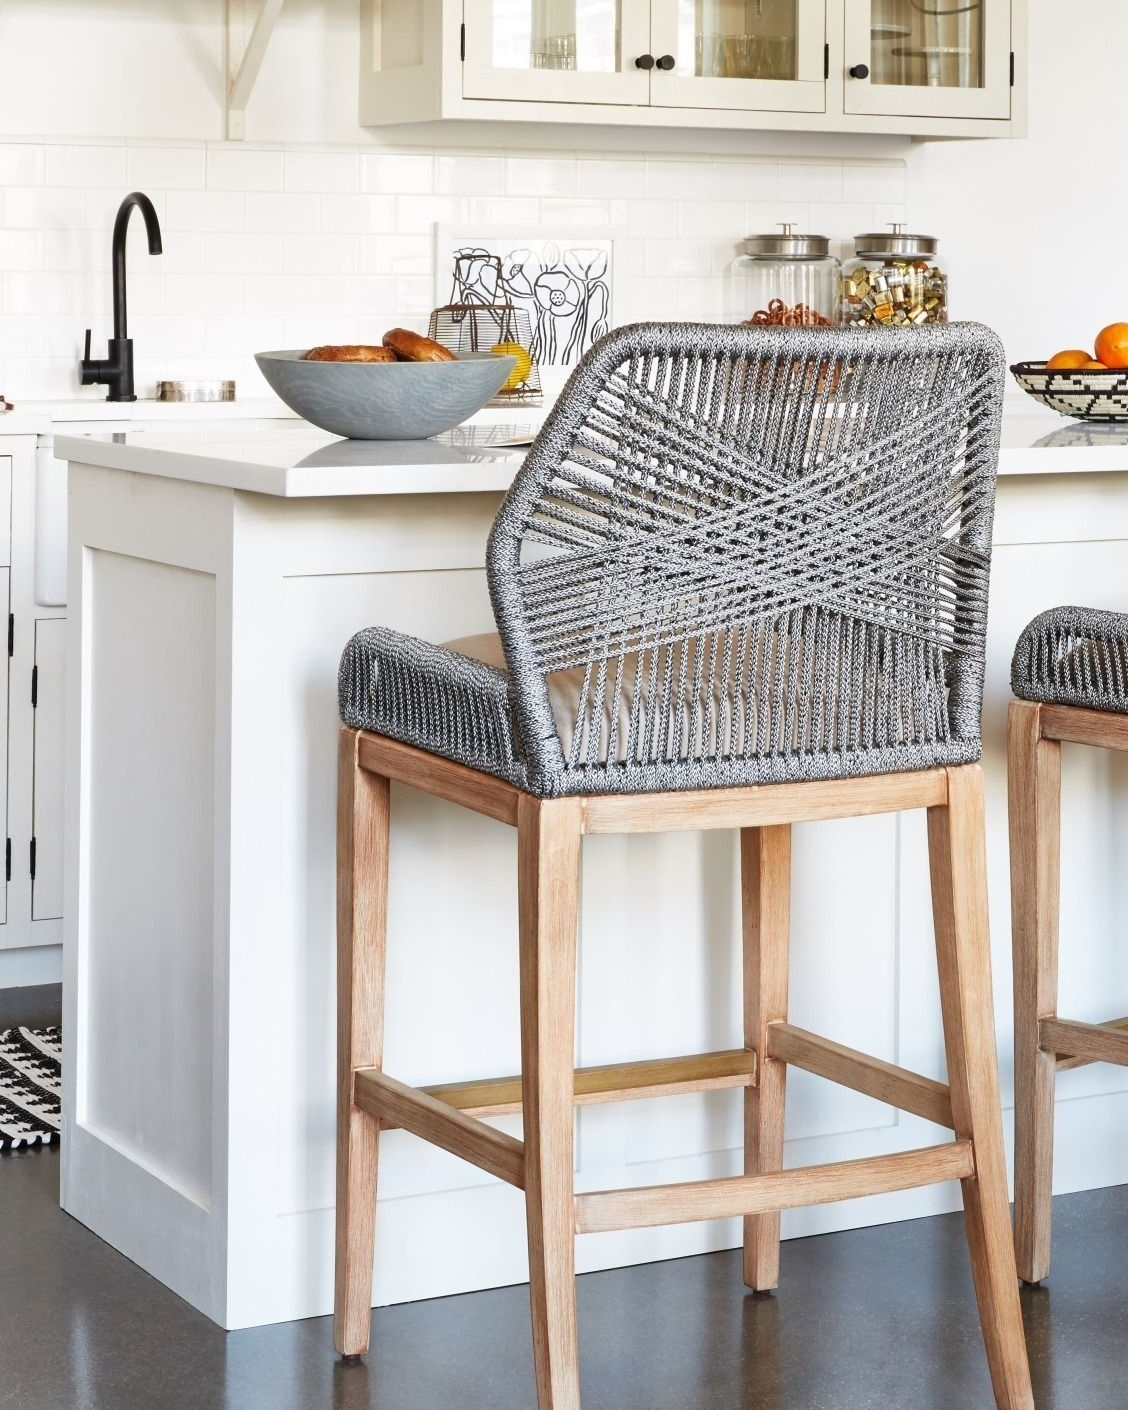 Laurent 7 Piece Counter Sets With Upholstered Counterstools For Latest These Woven Rope Counter Stools Are Such A Fun, Unexpected Kitchen (View 6 of 25)